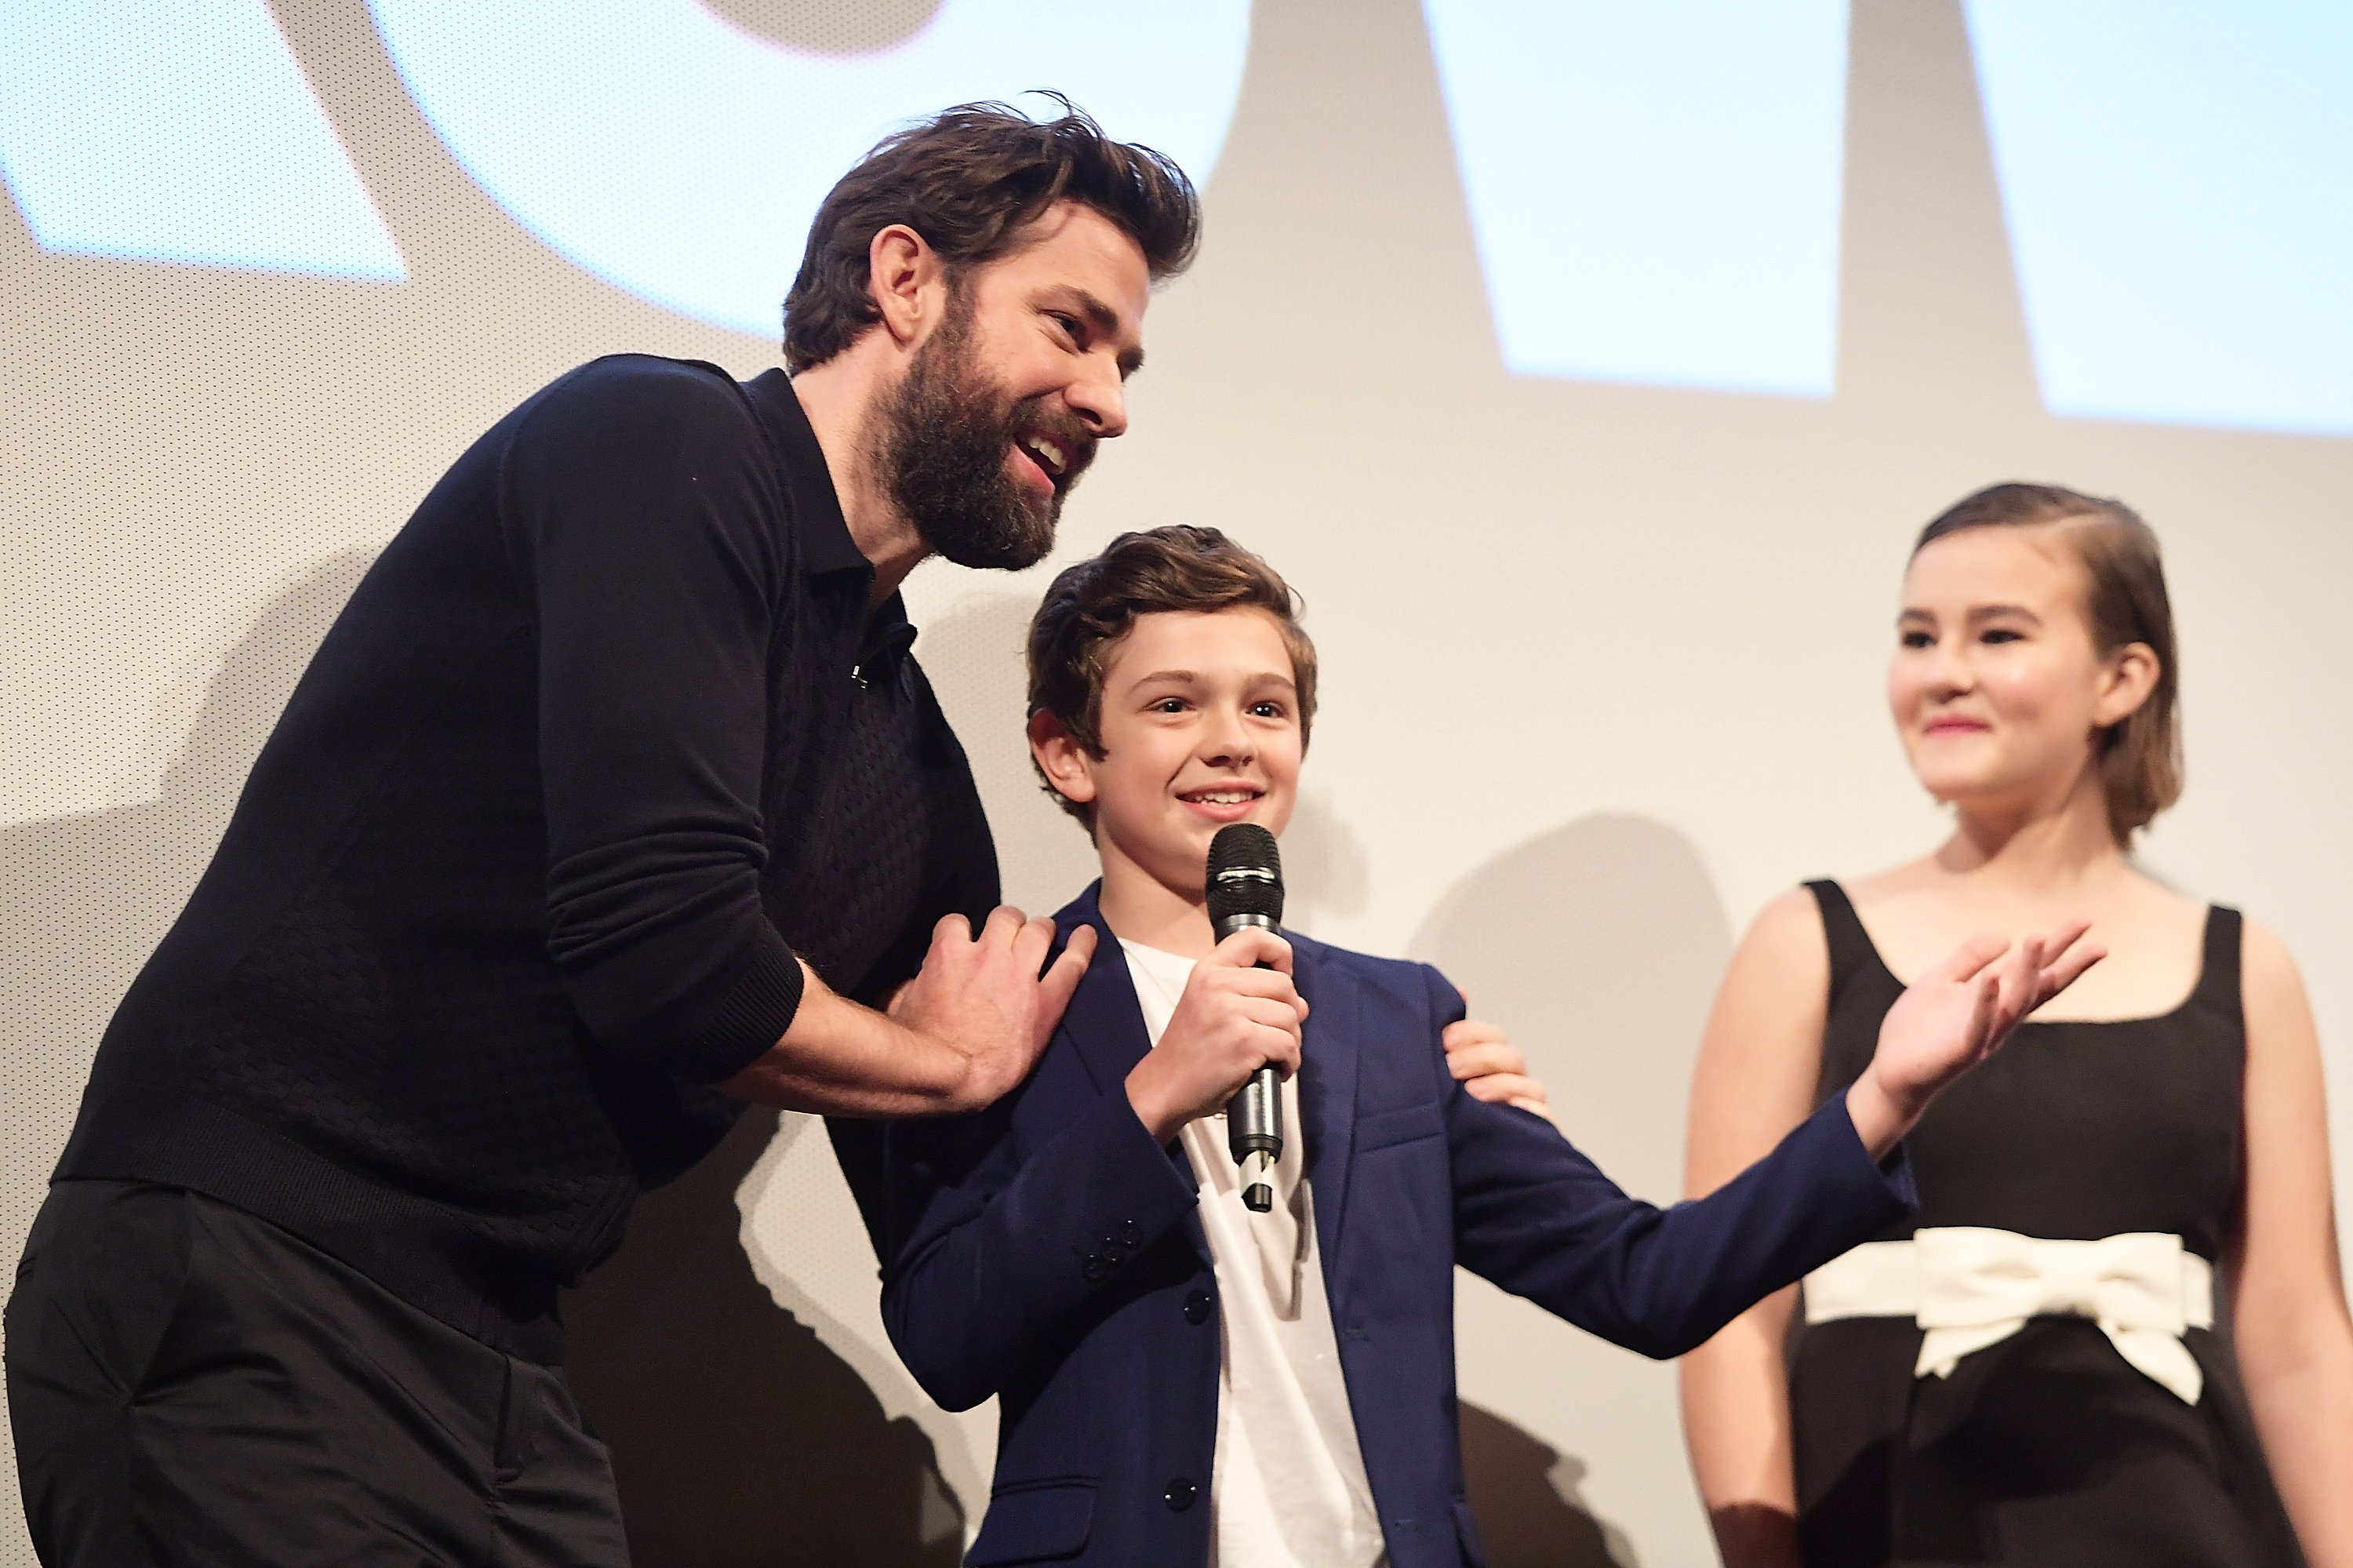 John Krasinski, Noah Jupe,and Millicent Simmonds at the Q&A for A Quiet Place.